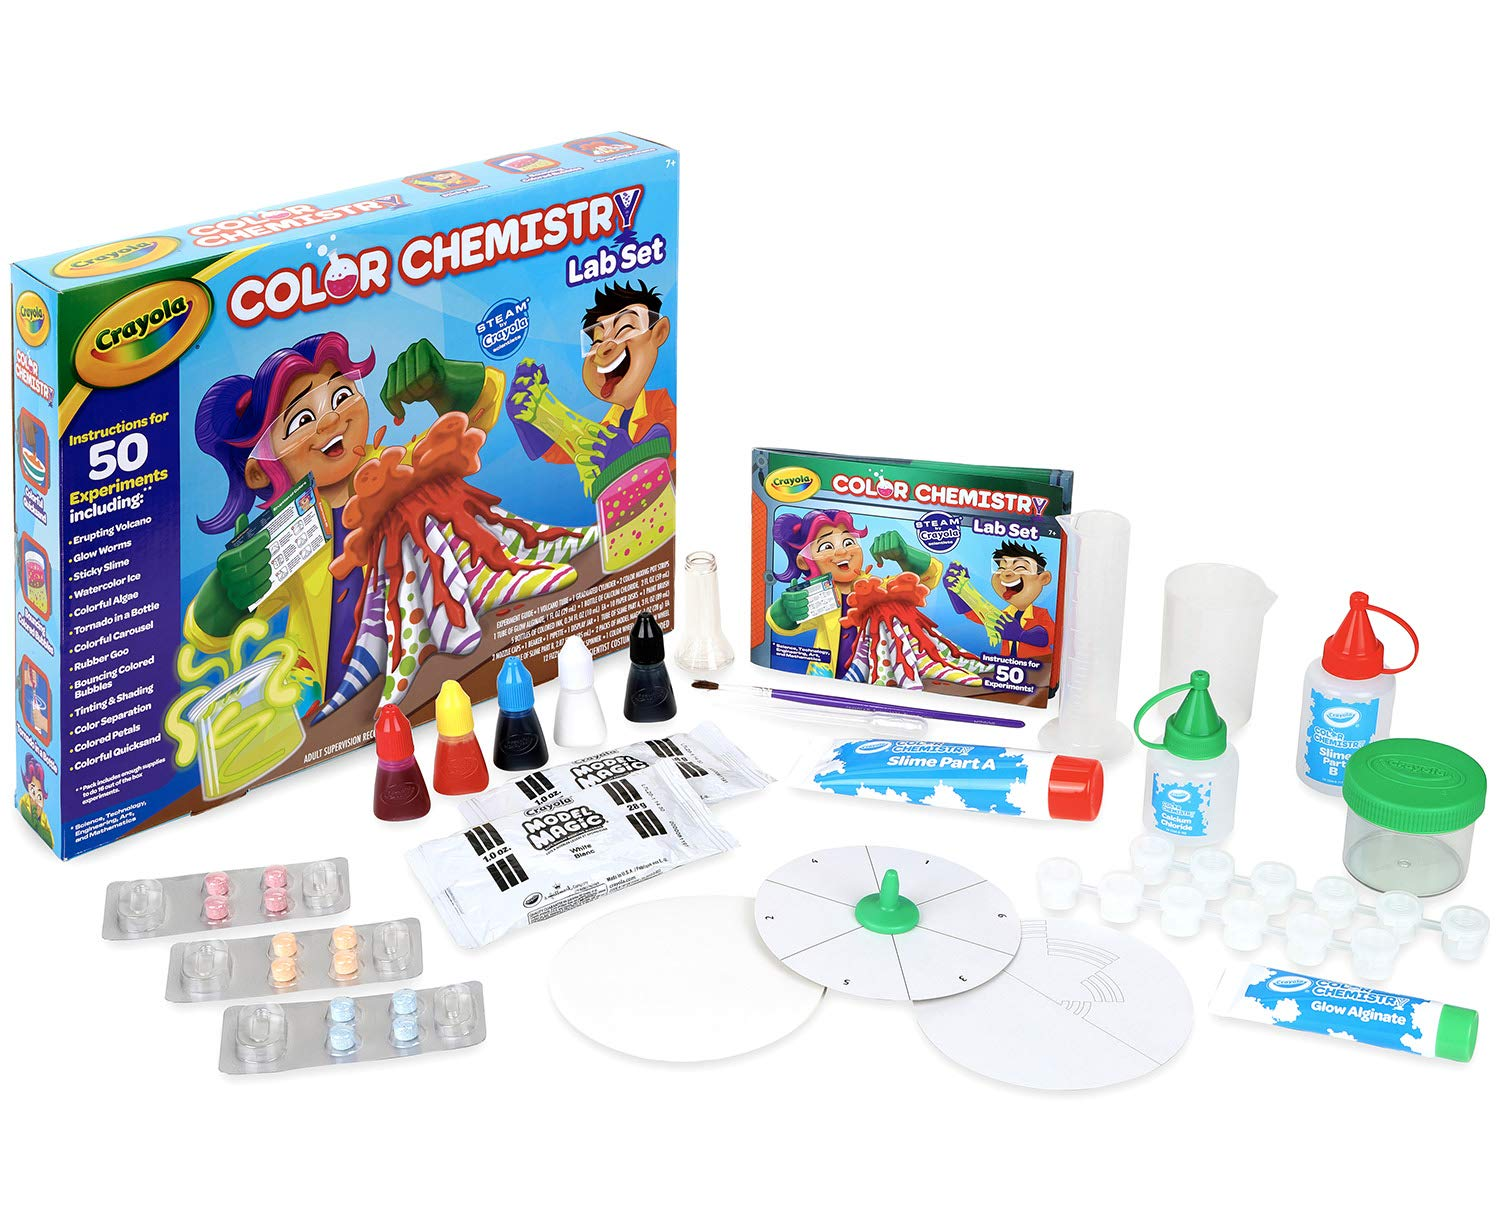 Top 13 Best Chemistry Set for Kids Reviews in 2020 11